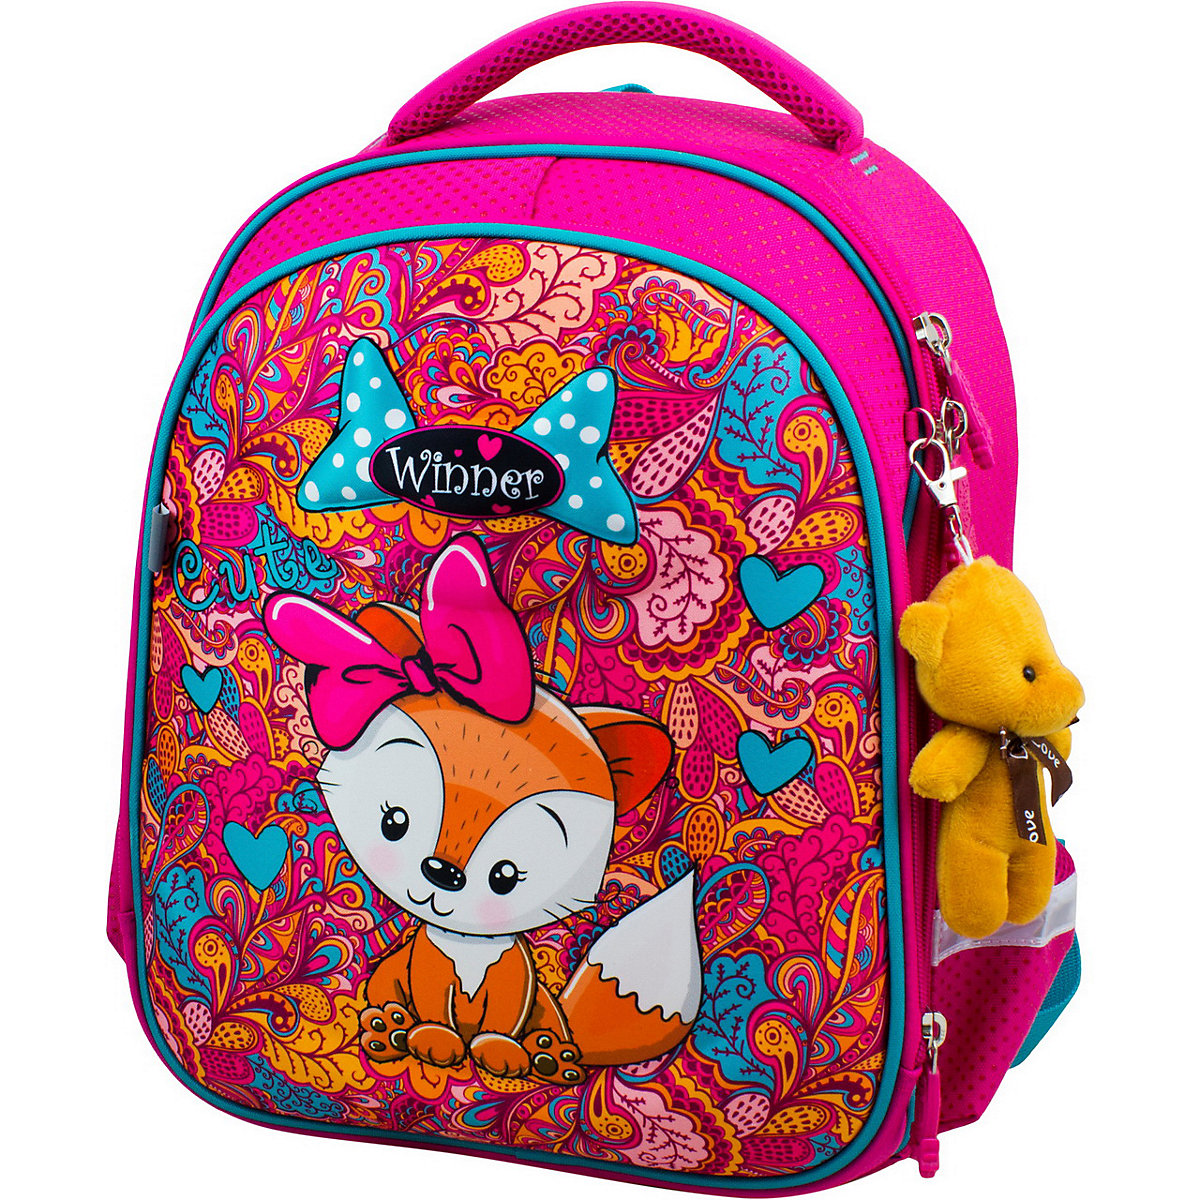 School Bags WINNER 11393813 Schoolbag Backpack For Boy And Girl Toy Key Chain Animals Reflective Element MTpromo